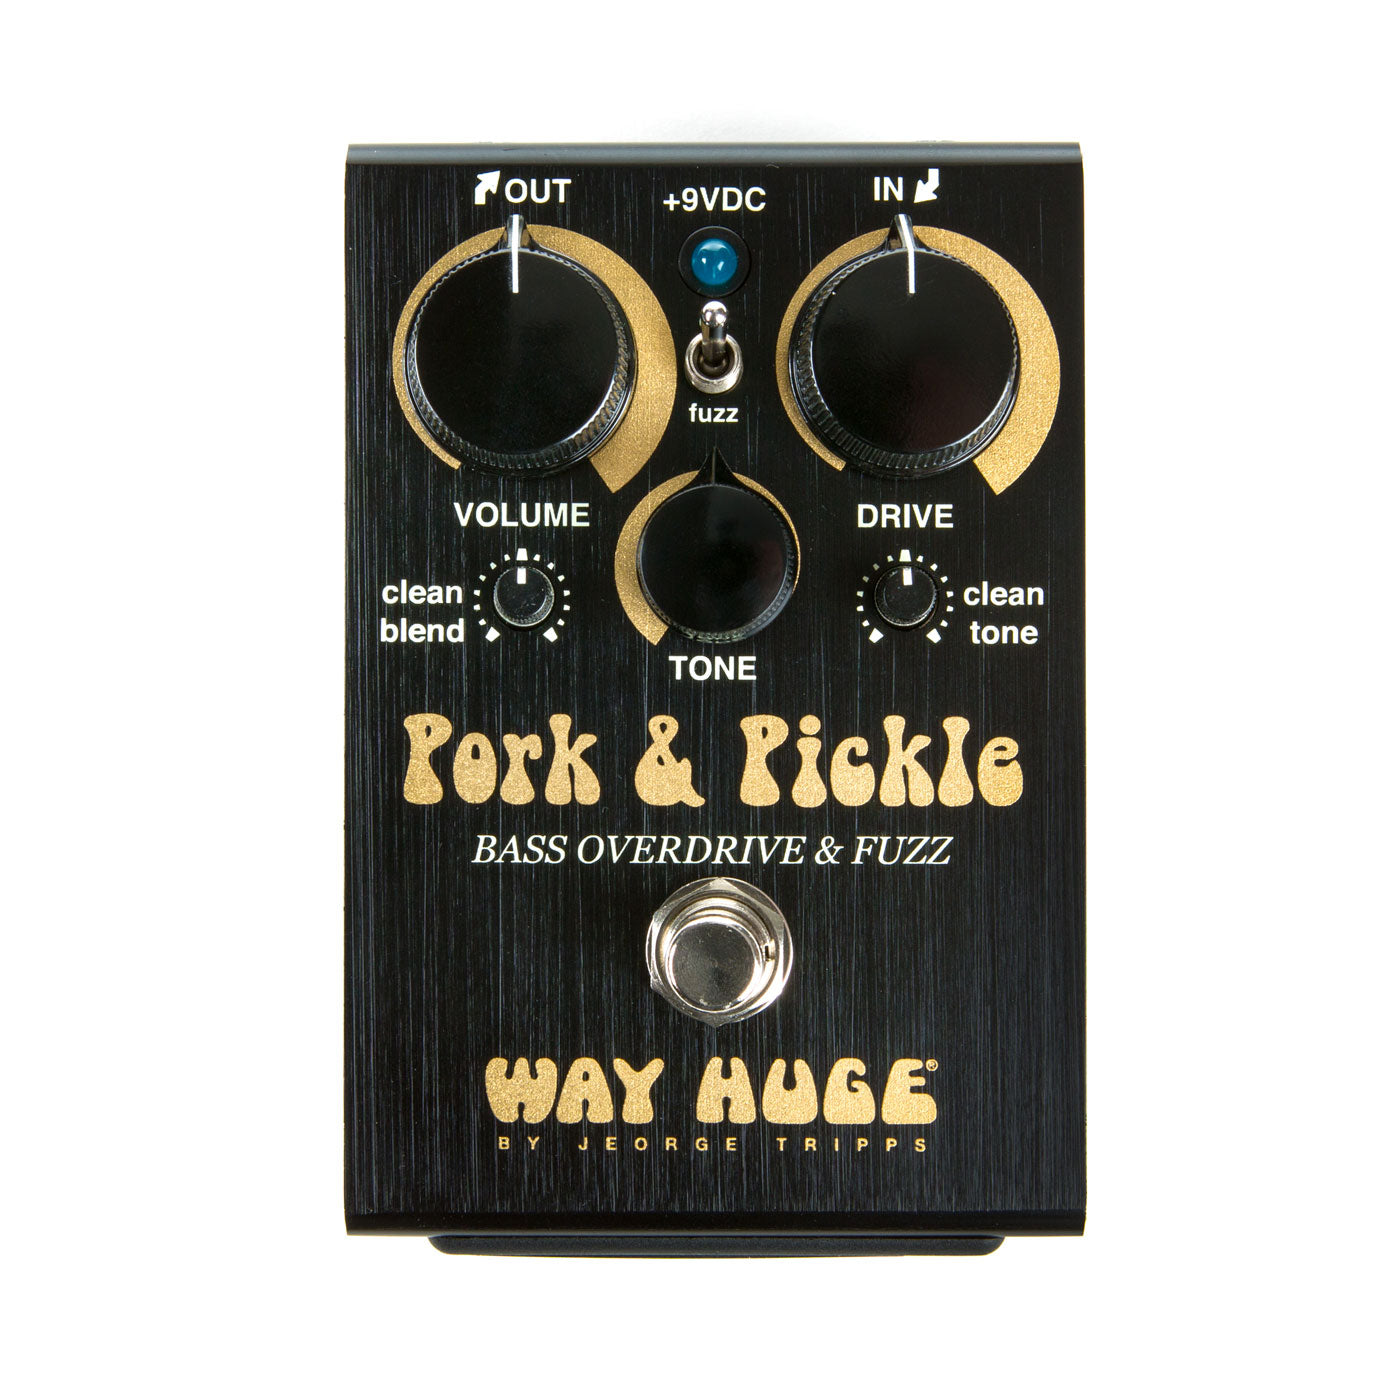 Way Huge Pork & Pickle Bass Overdrive & Fuzz - WHE214